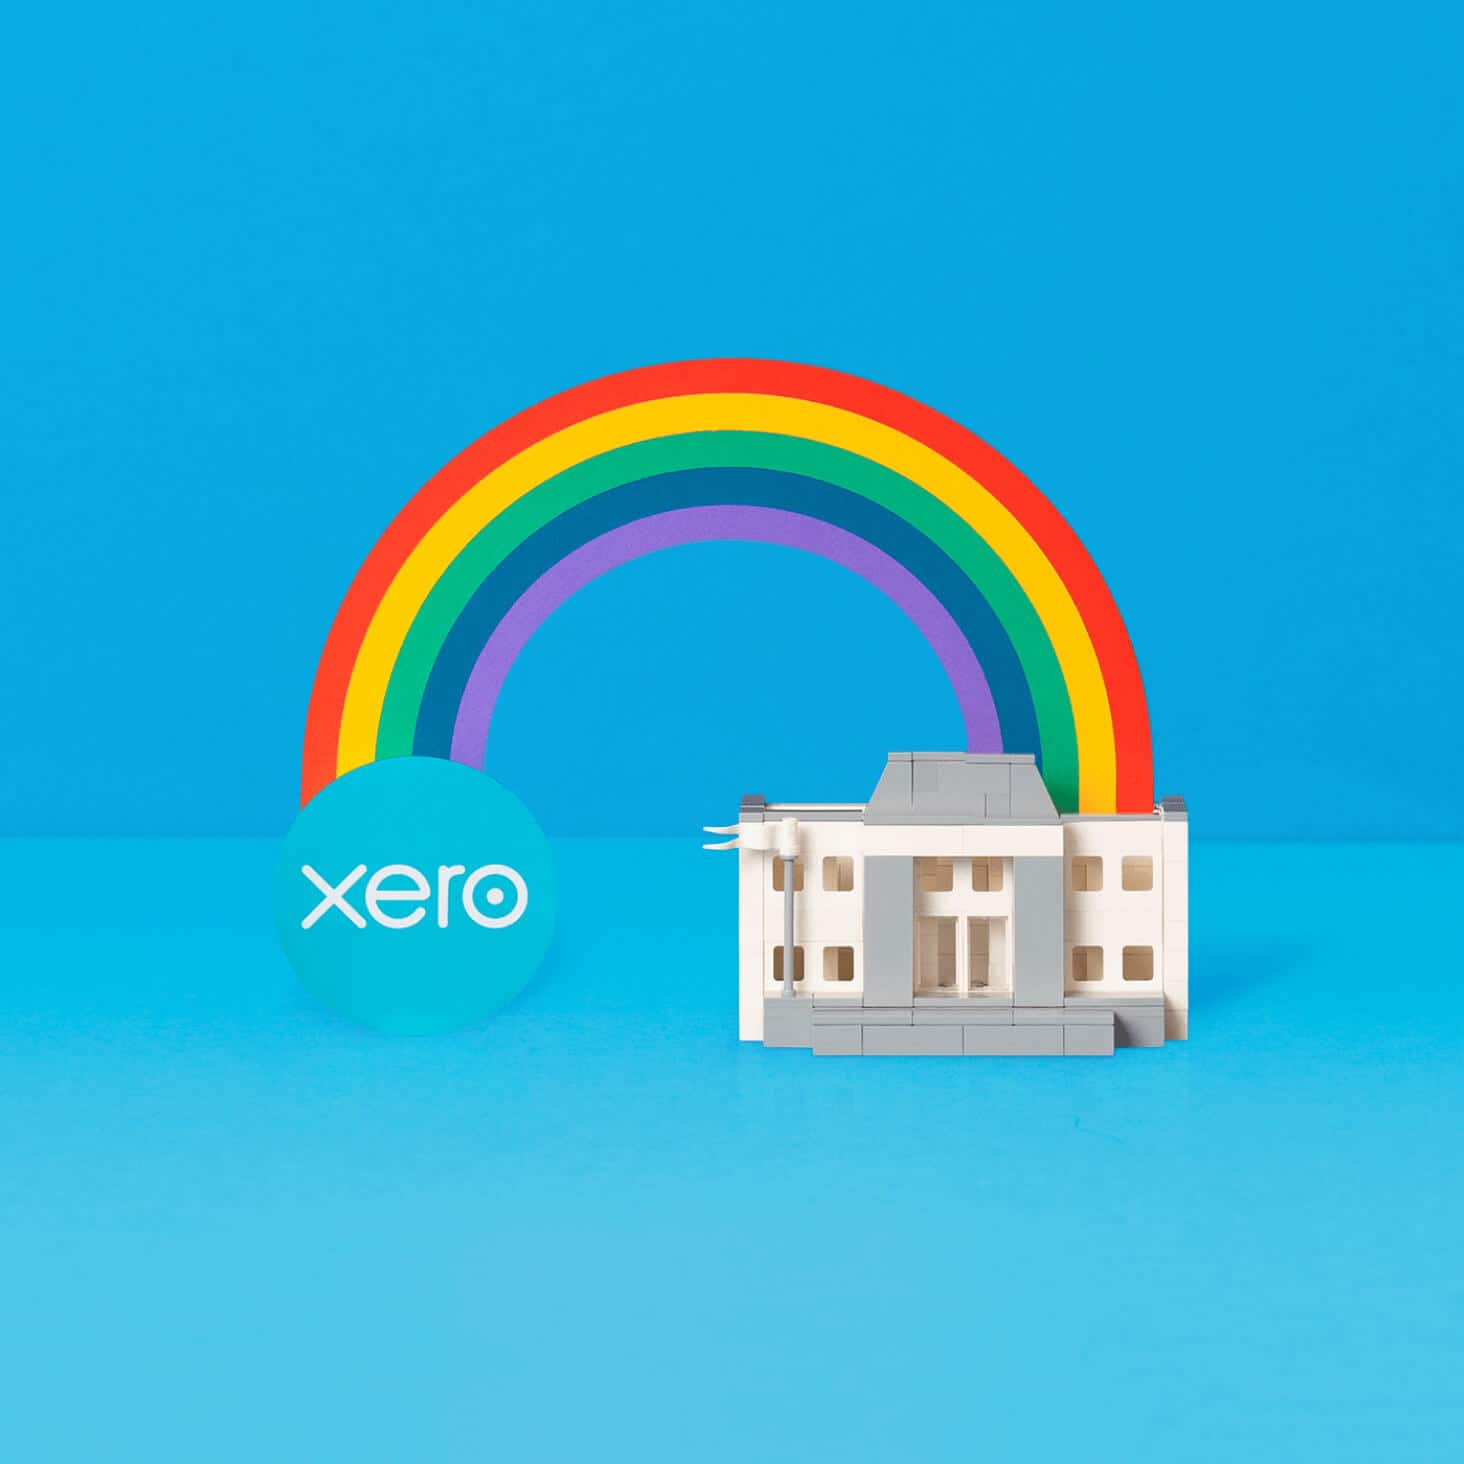 Xero logo connected to a bank by a rainbow